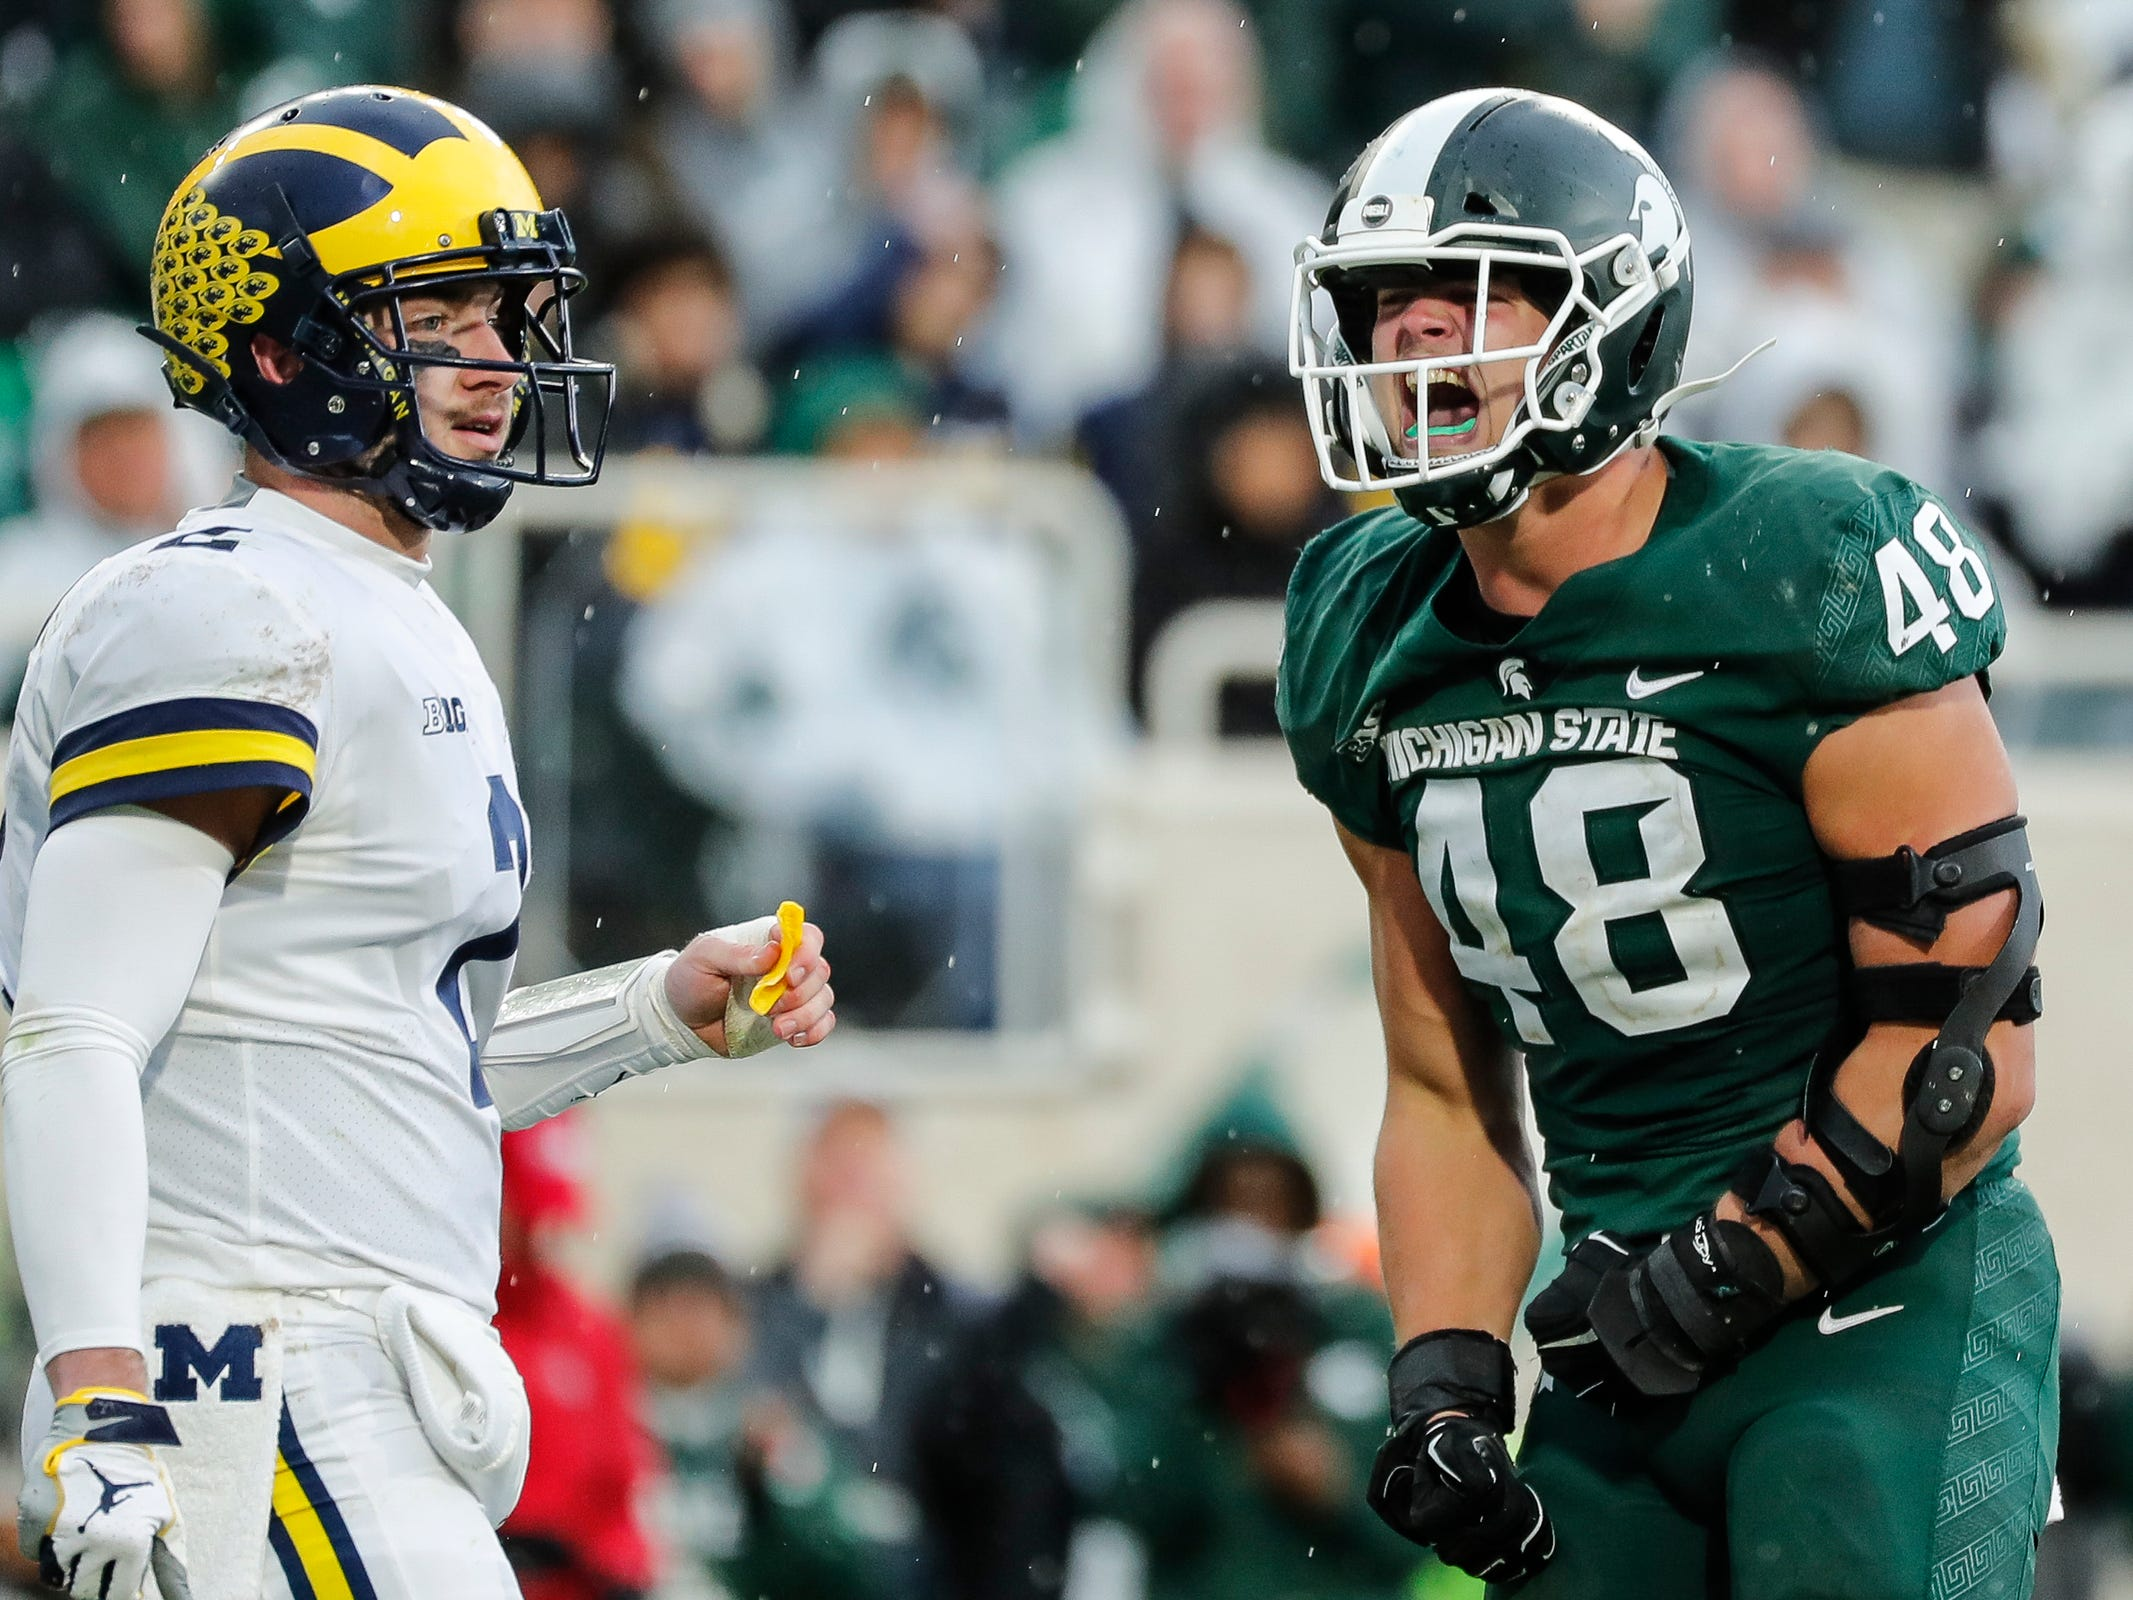 Michigan State defensive end Kenny Willekes celebrates a play against Michigan quarterback Shea Patterson during the second half at Spartan Stadium in East Lansing, Saturday, Oct. 20, 2018.